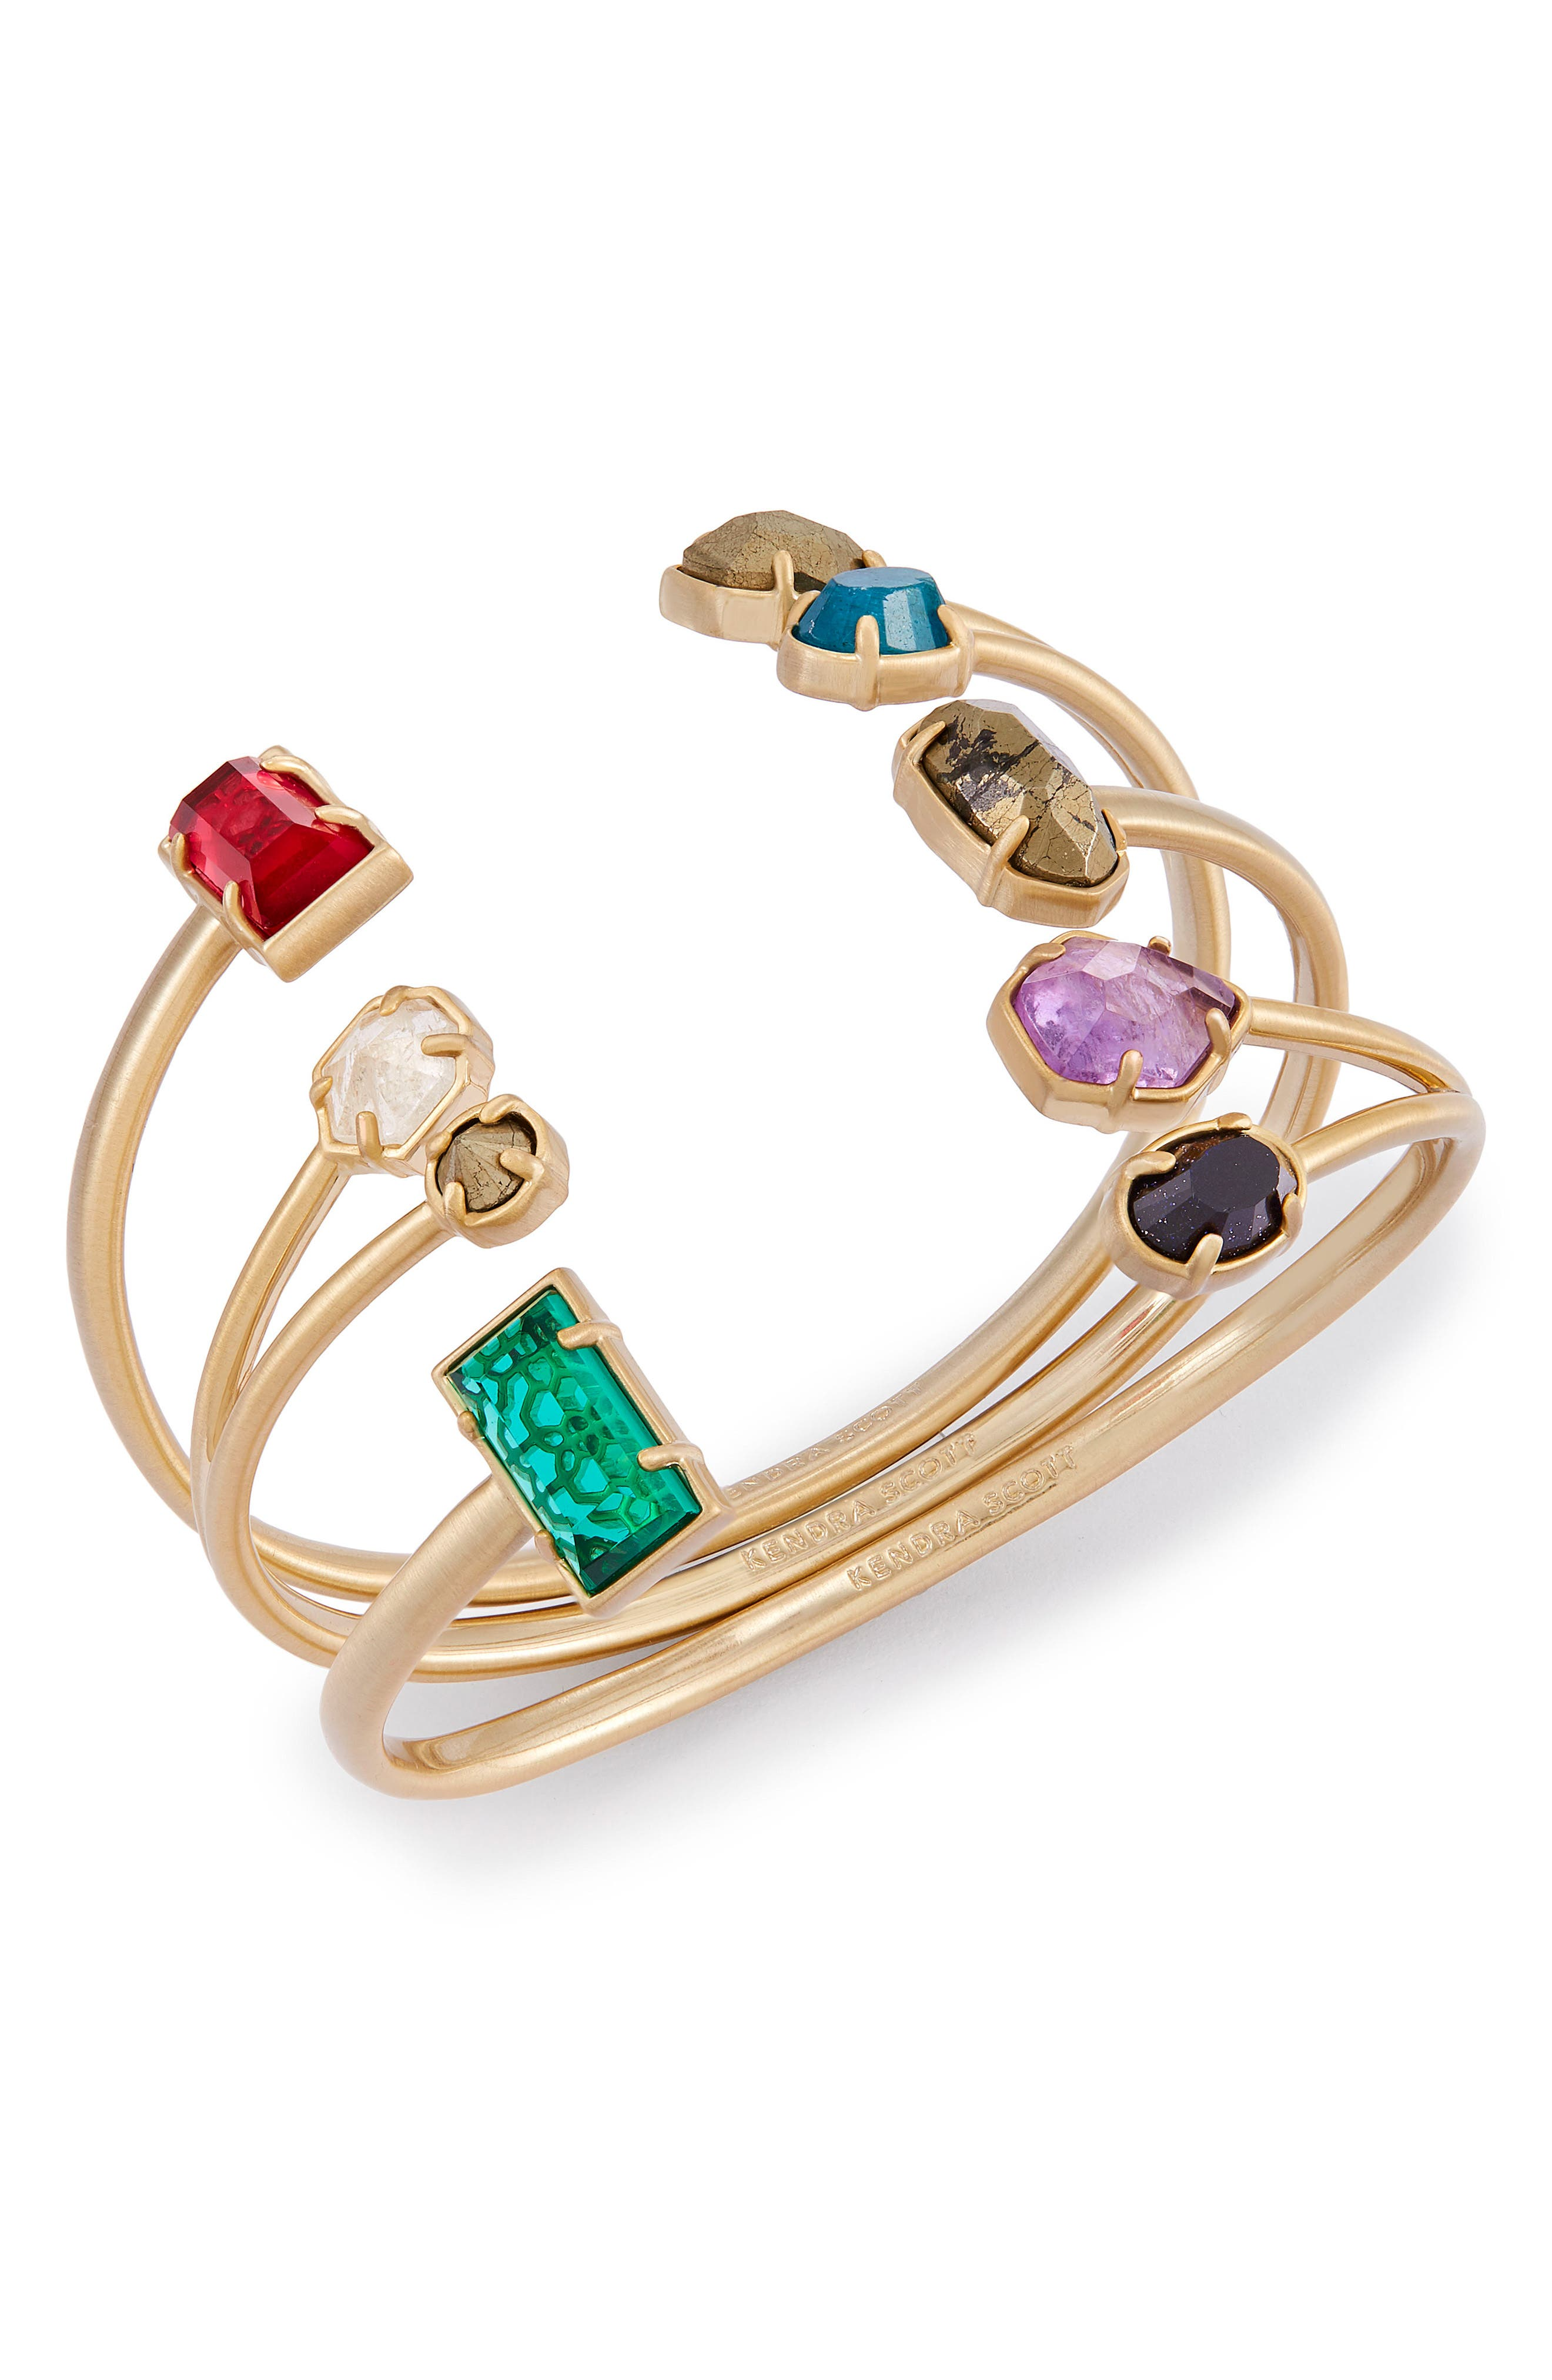 Cammy Set of 3 Cuffs,                         Main,                         color, Jewel Tone Mix/ Brass